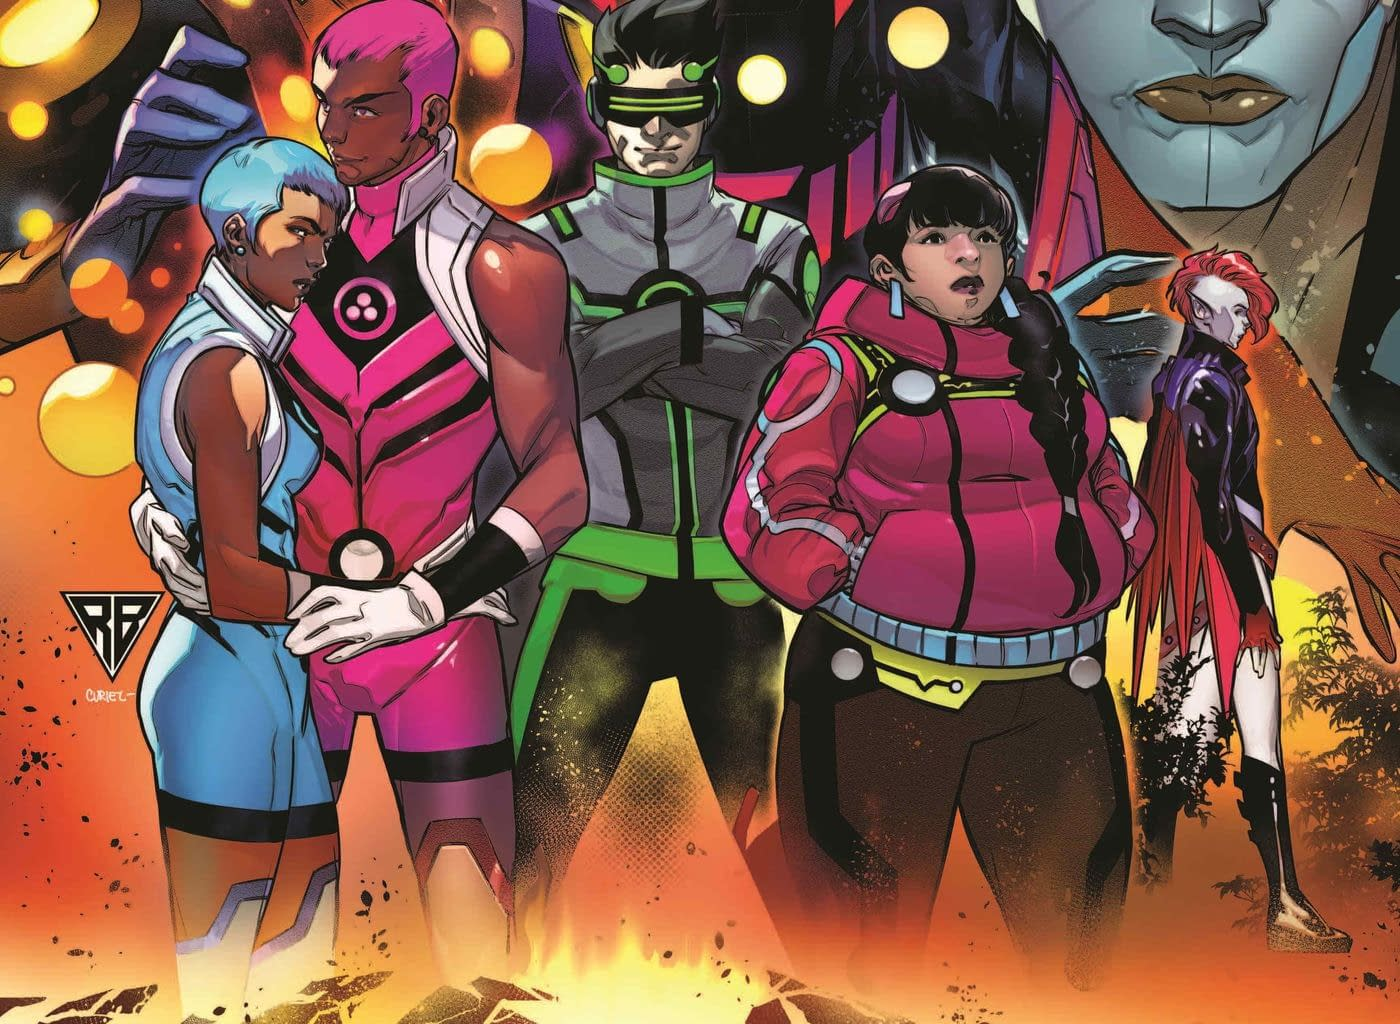 Daniel Kibblesmith and Luciano Vecchio Bring Back New Warriors in April